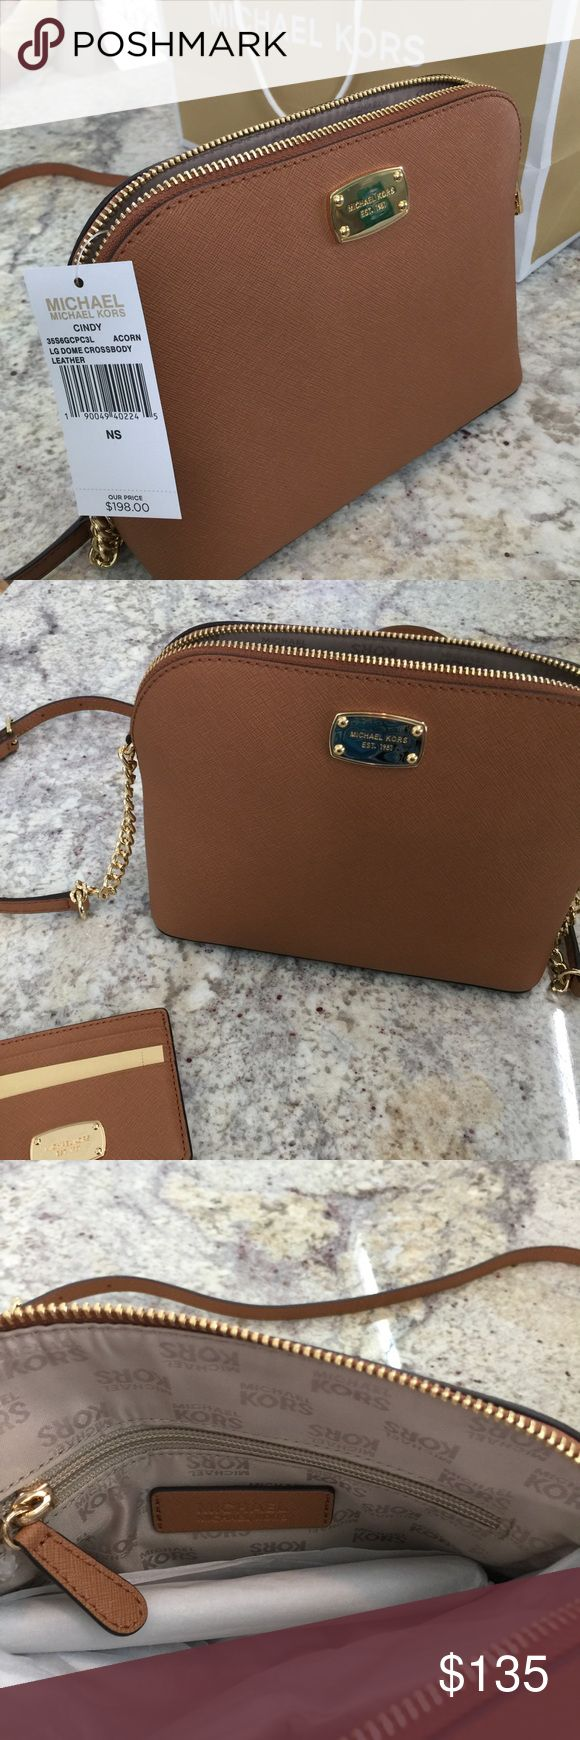 Michael Kors Crossbody Style Cindy. Dome Crossbody in crosshatch tan leather with gold hardware. Color: Acorn Michael Kors Bags Crossbody Bags